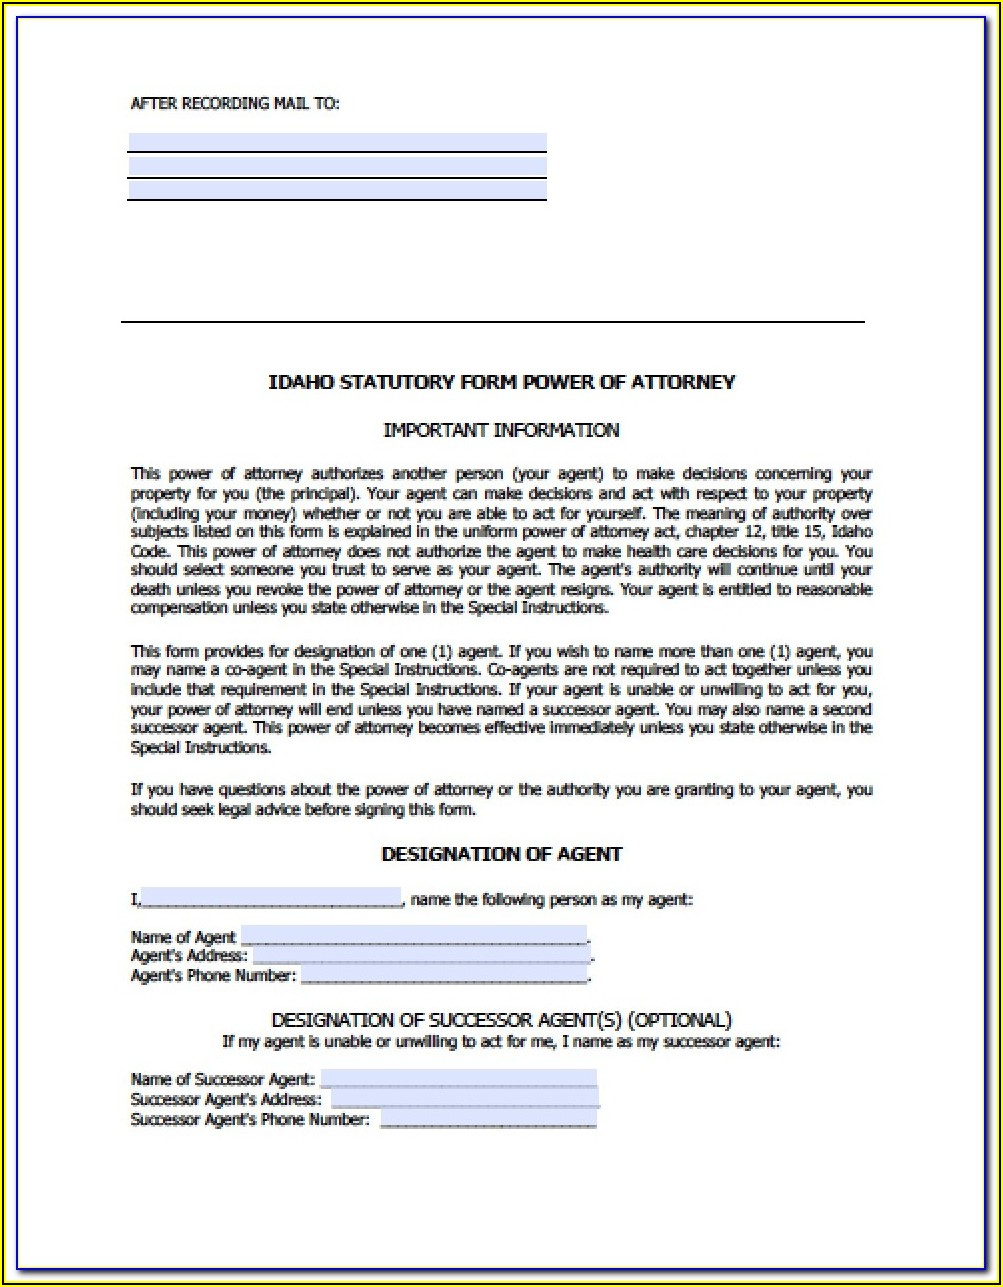 Idaho Statutory Form Of General Power Of Attorney